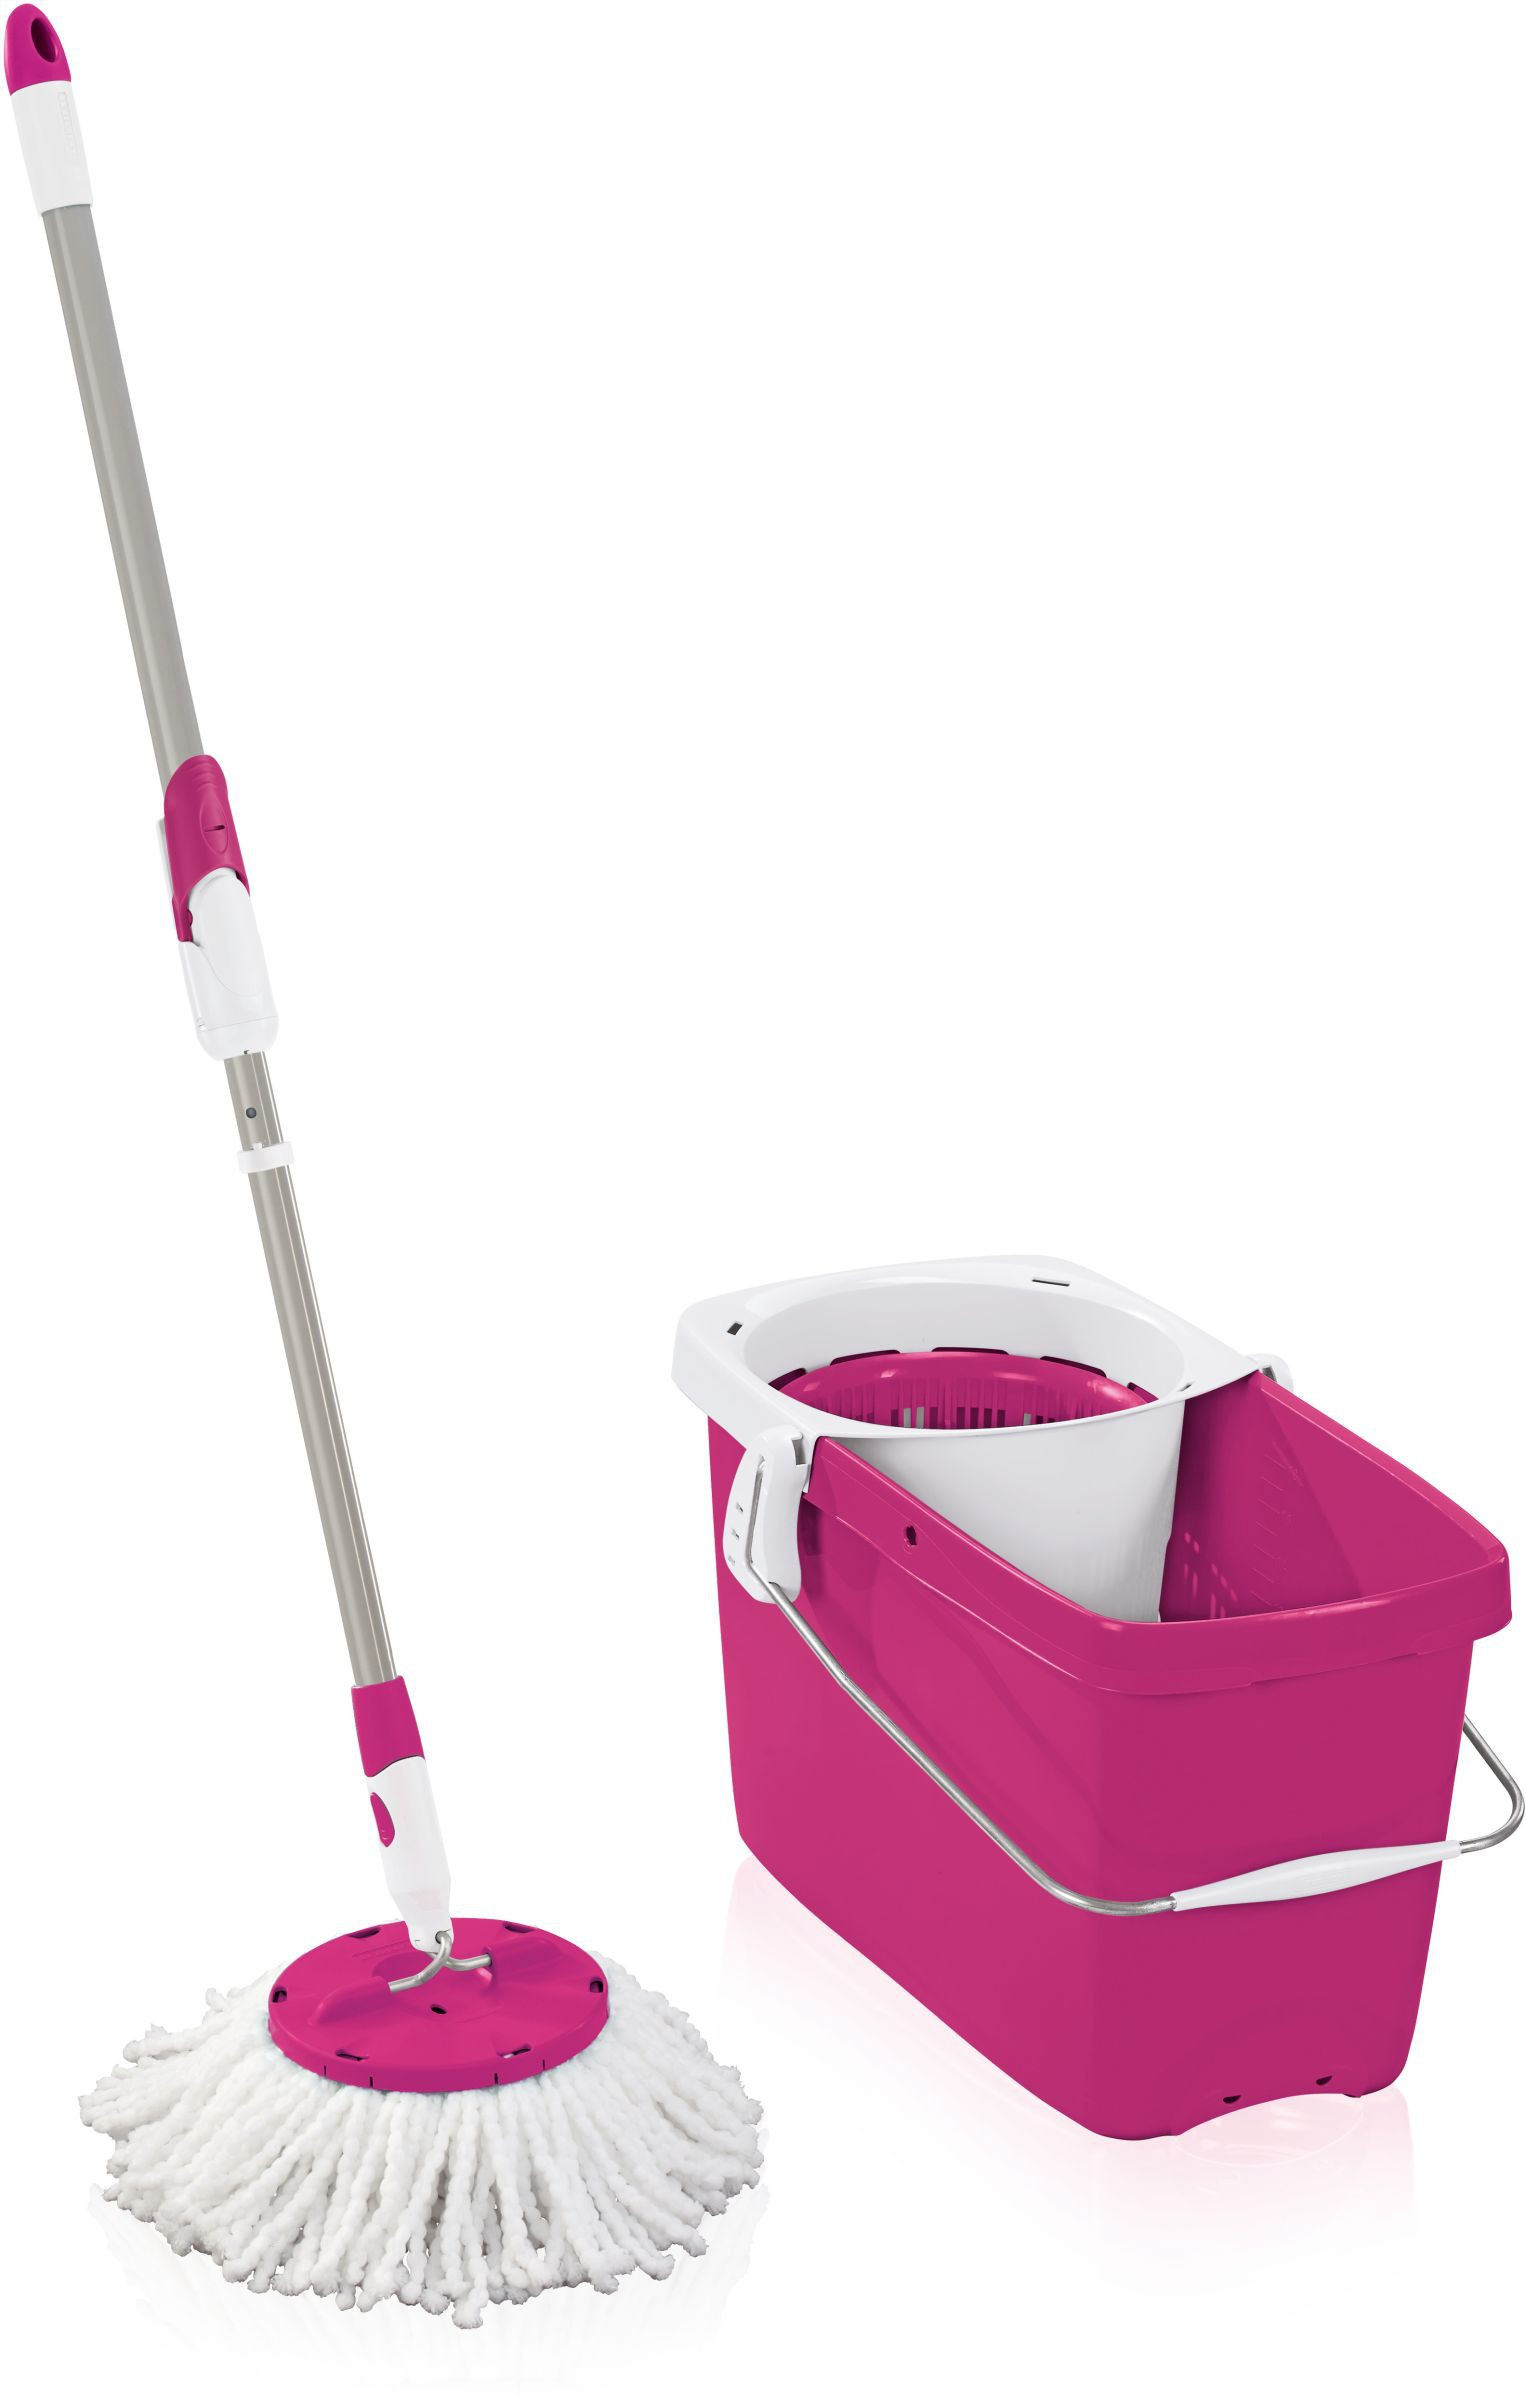 leifheit clean twist set disc mop farbe crazy pink online kaufen. Black Bedroom Furniture Sets. Home Design Ideas